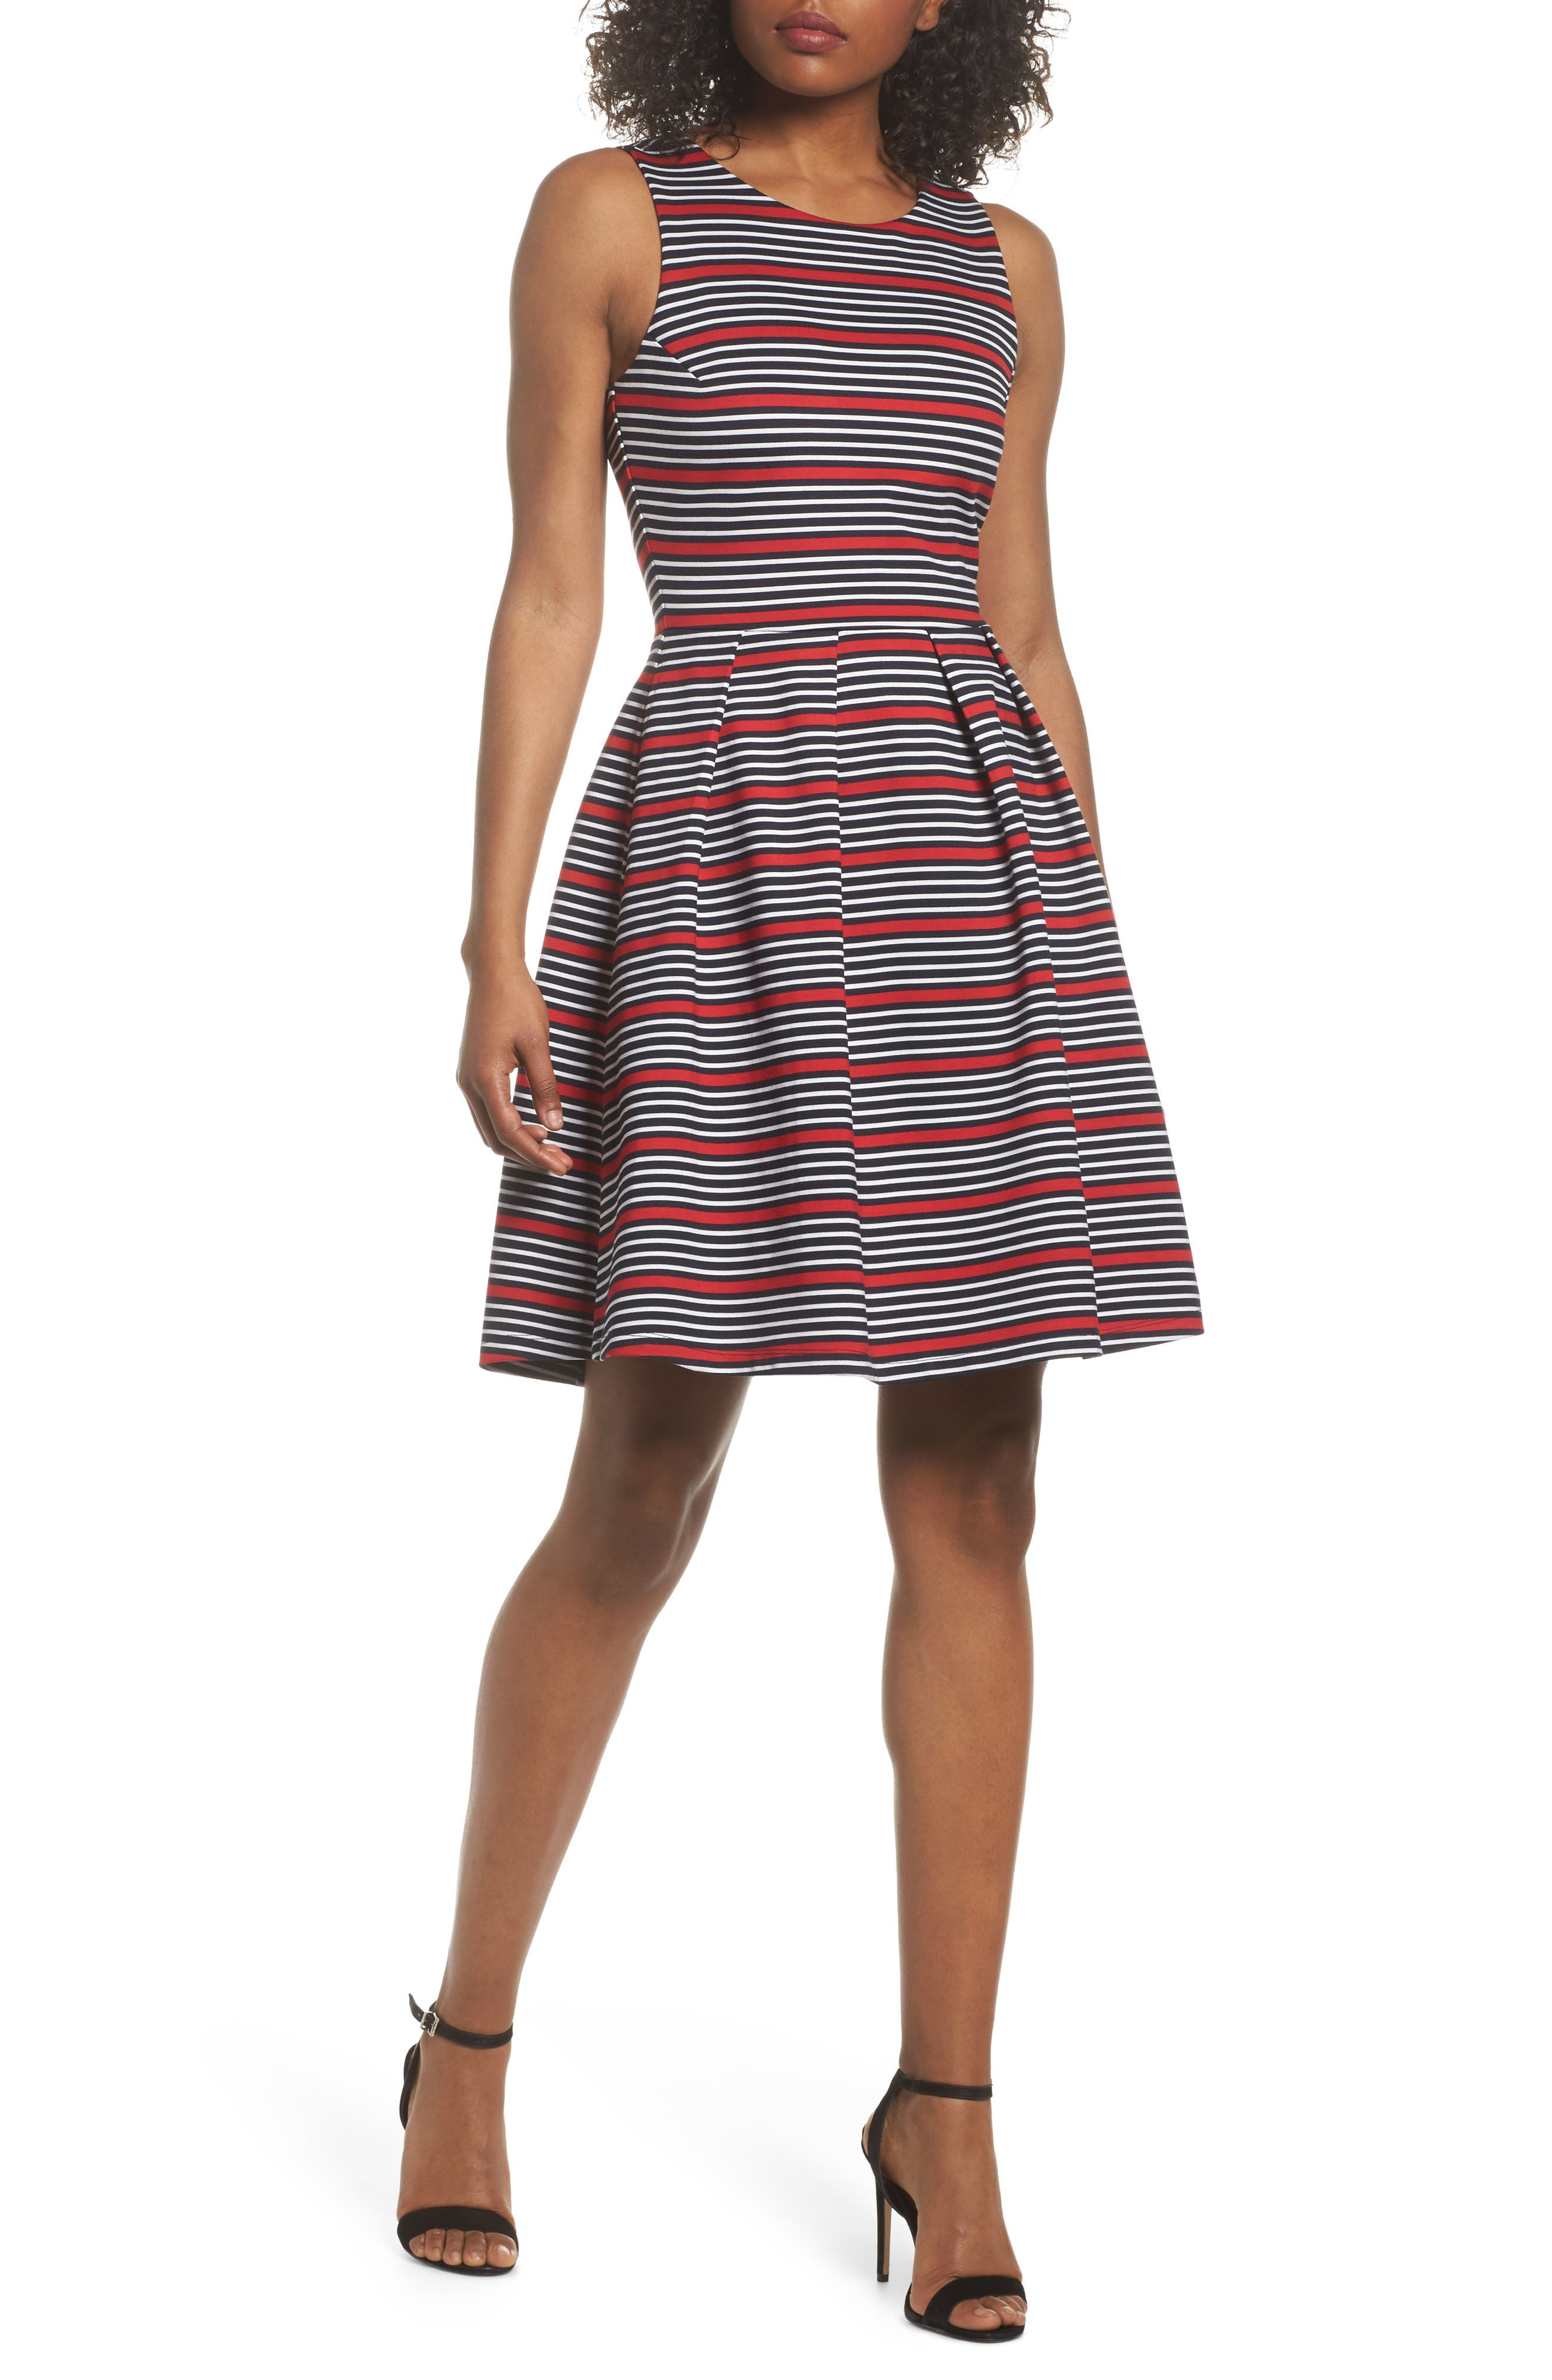 Felicity & Coco Scarlette Stripe Fit & Flare Dress